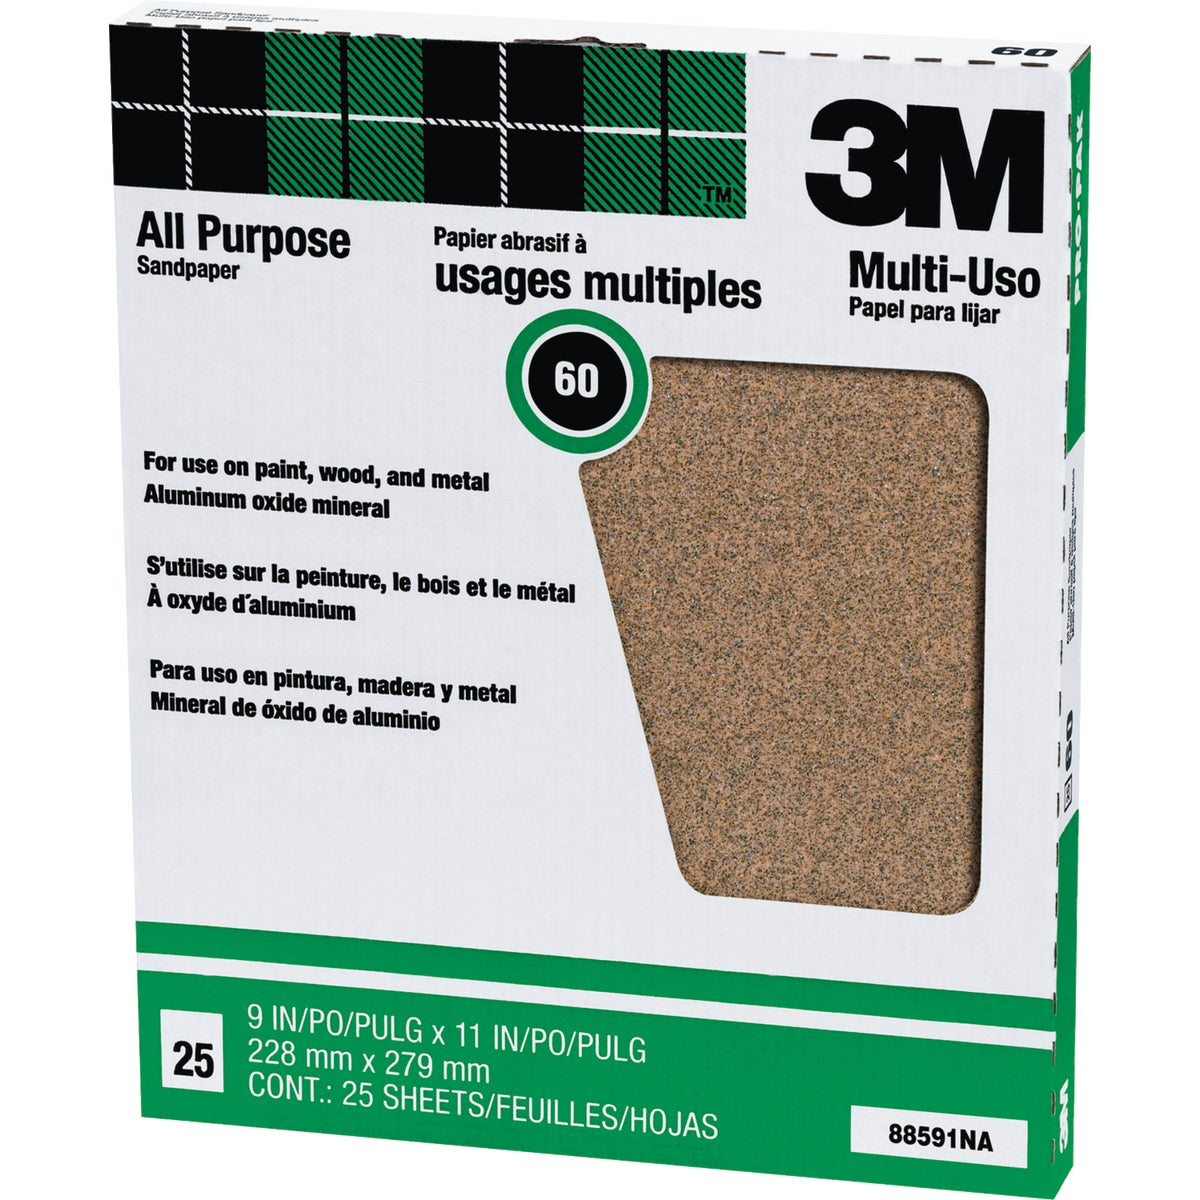 60D PRODUCTION SANDPAPER - 88591NA by 3m Co